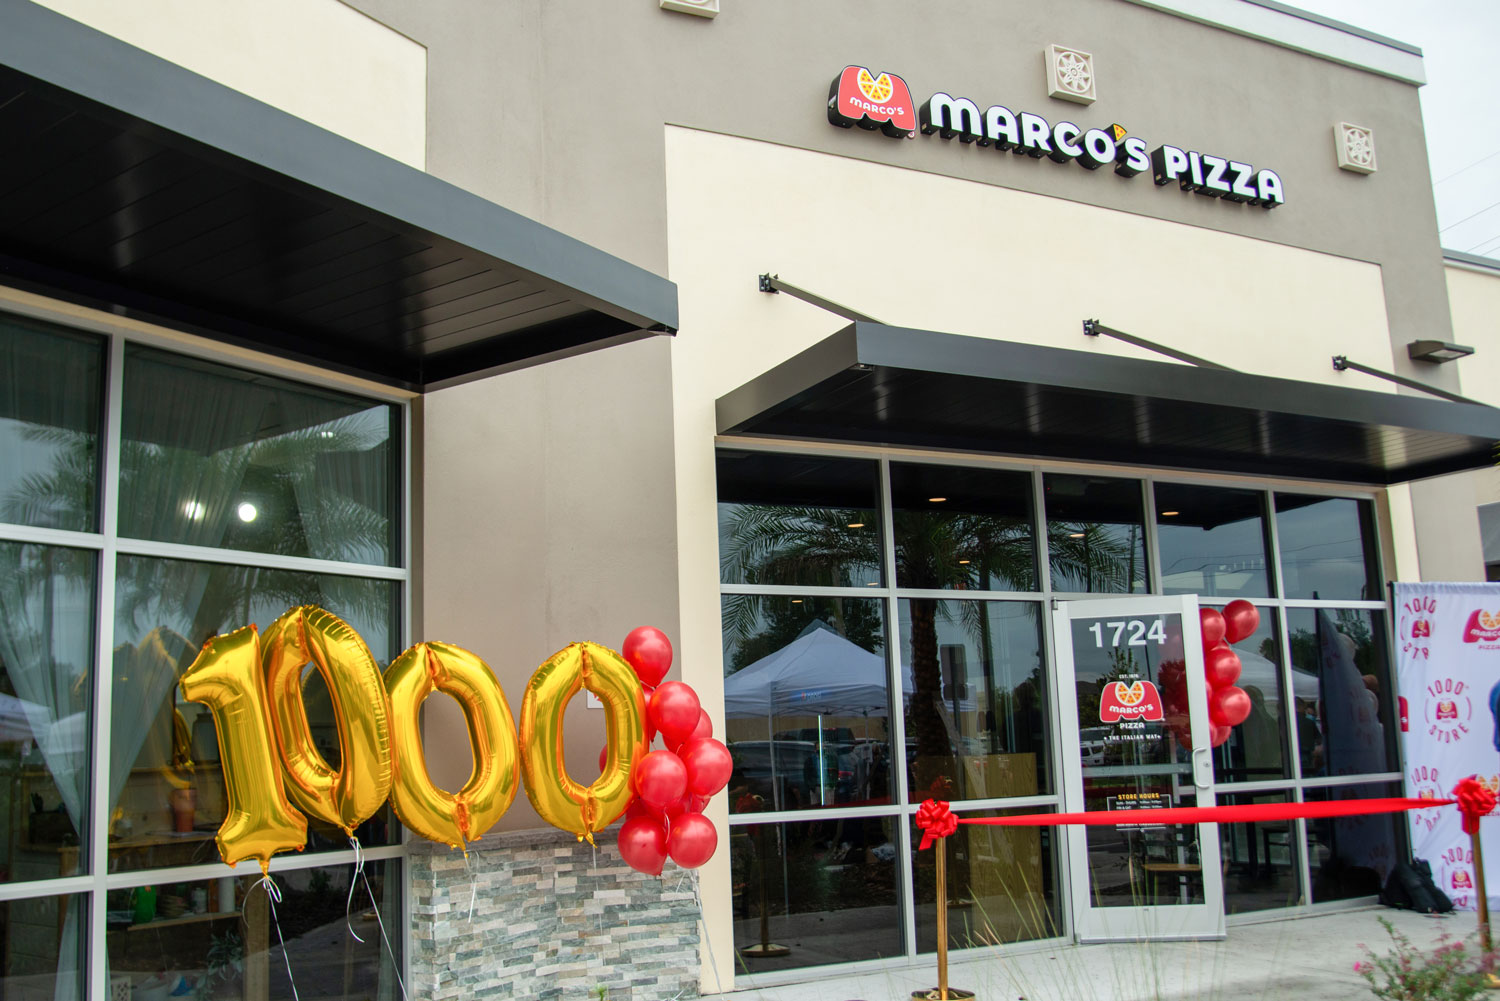 The grand opening of the 1000th Marco's Pizza location.